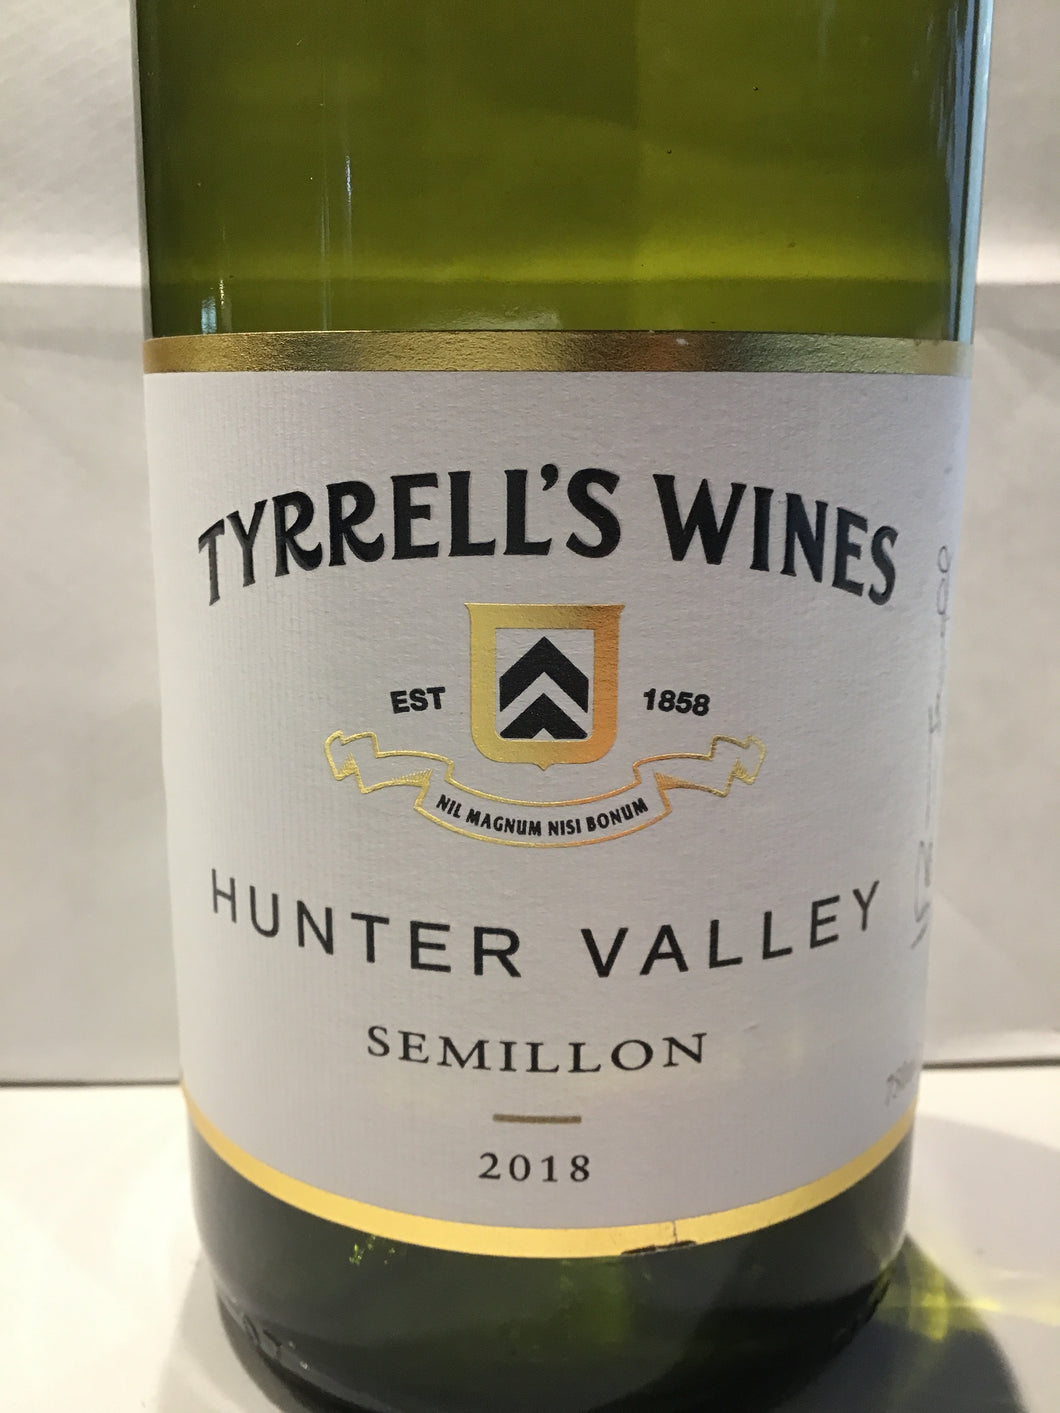 Tyrrell's Wines - Semillon - Hunter Valley